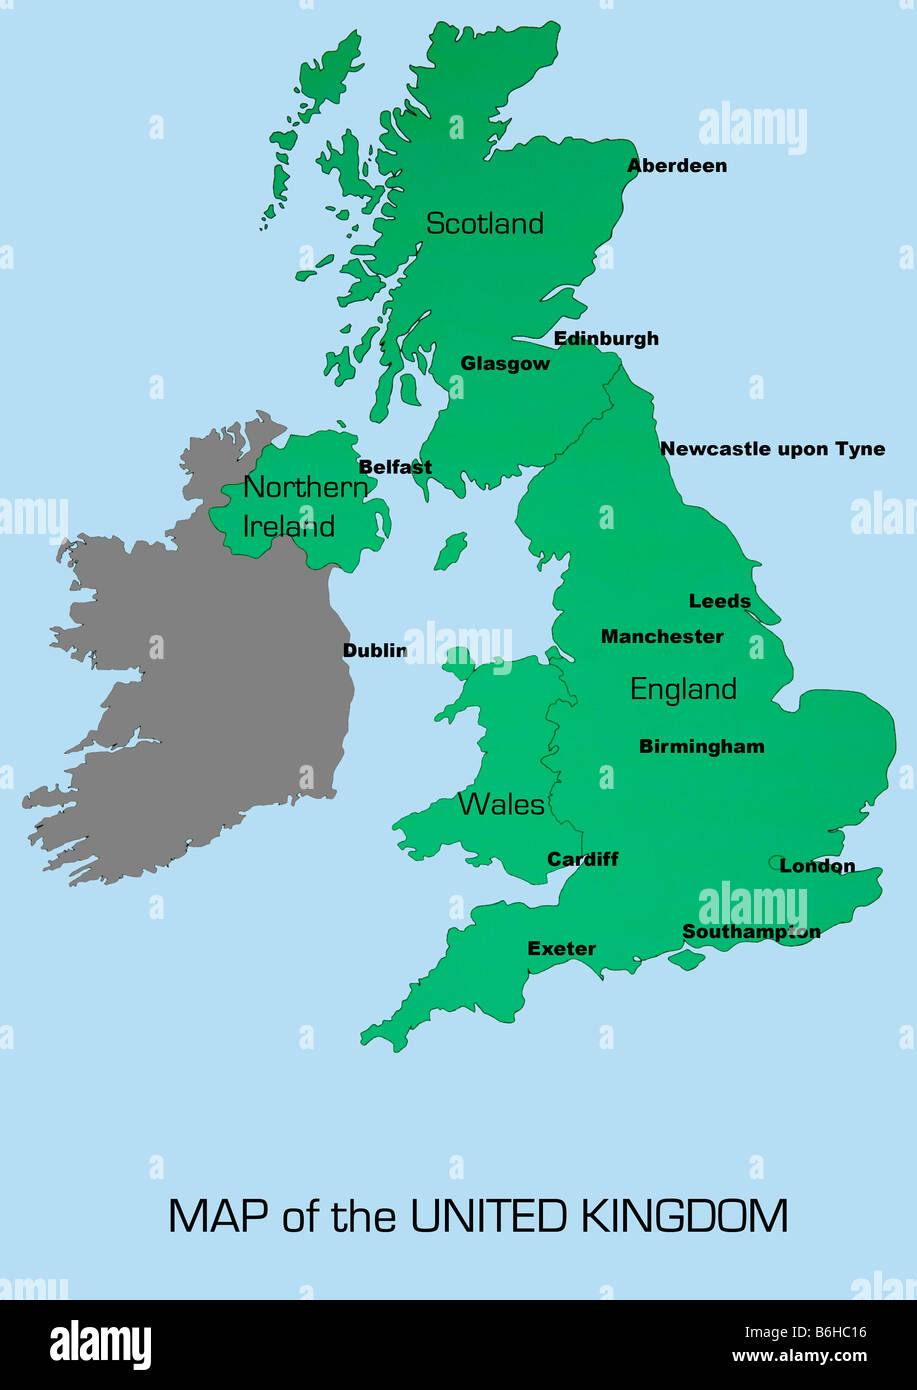 Map Of Uk And Ireland With Cities.Uk Map Showing England Scotland Wales And Northern Ireland With